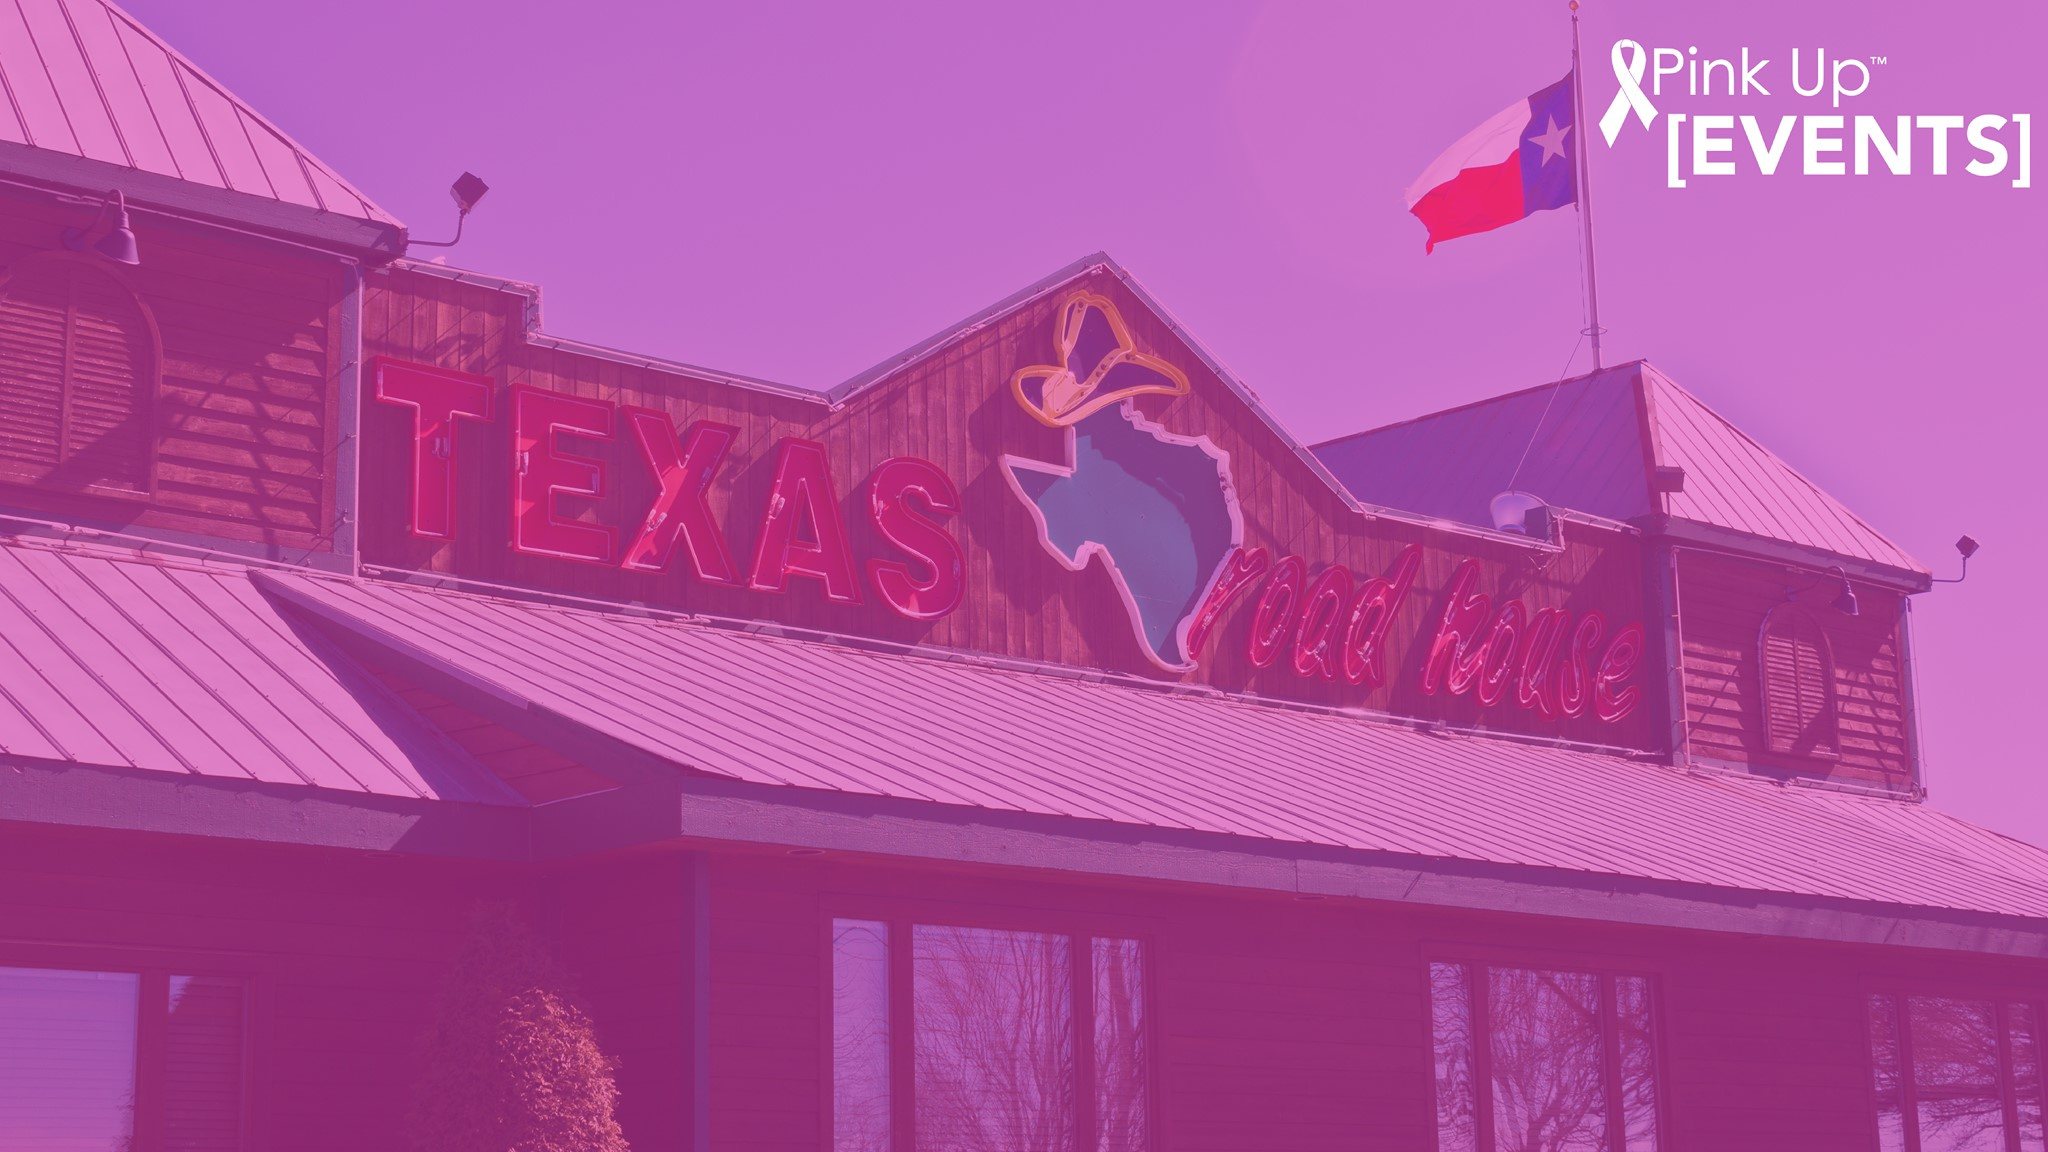 Pink Up Texas Roadhouse